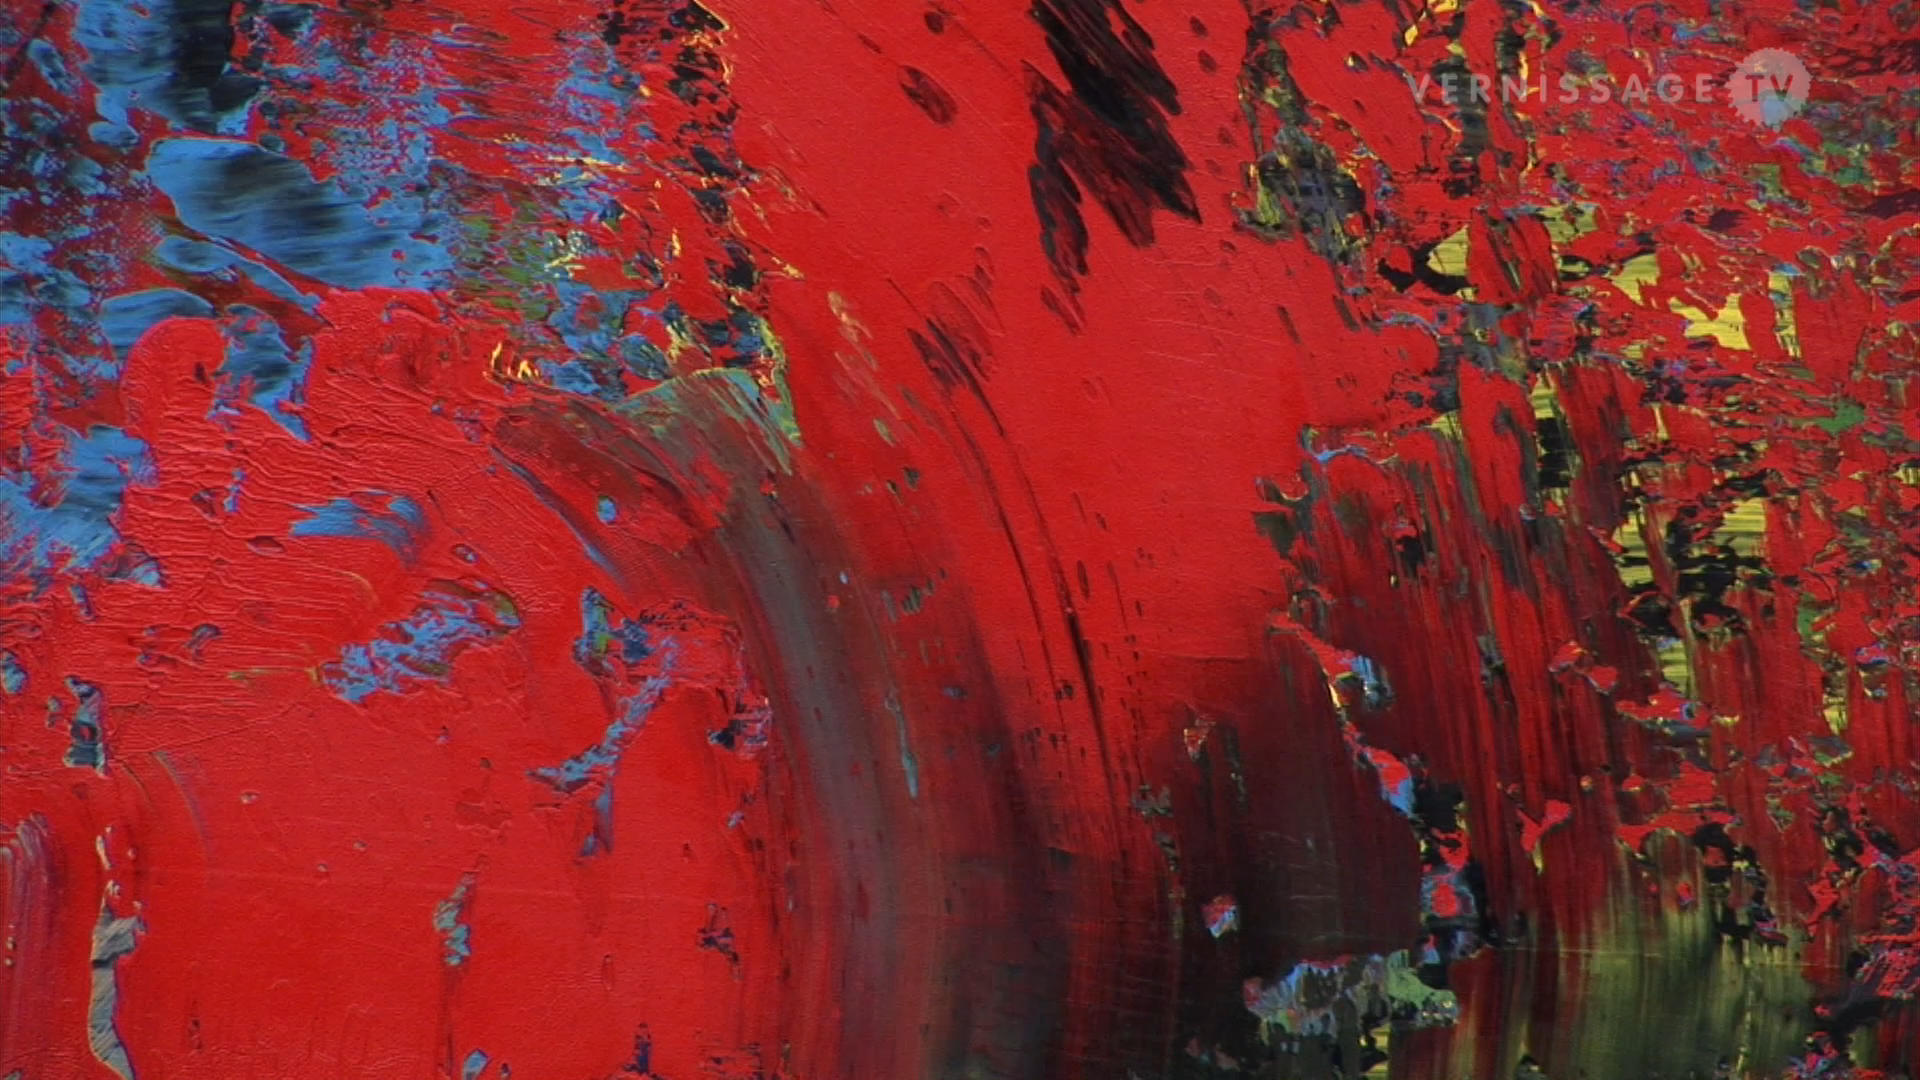 VTV Classics (r3): Gerhard Richter: Paintings from Private Collections (2008)